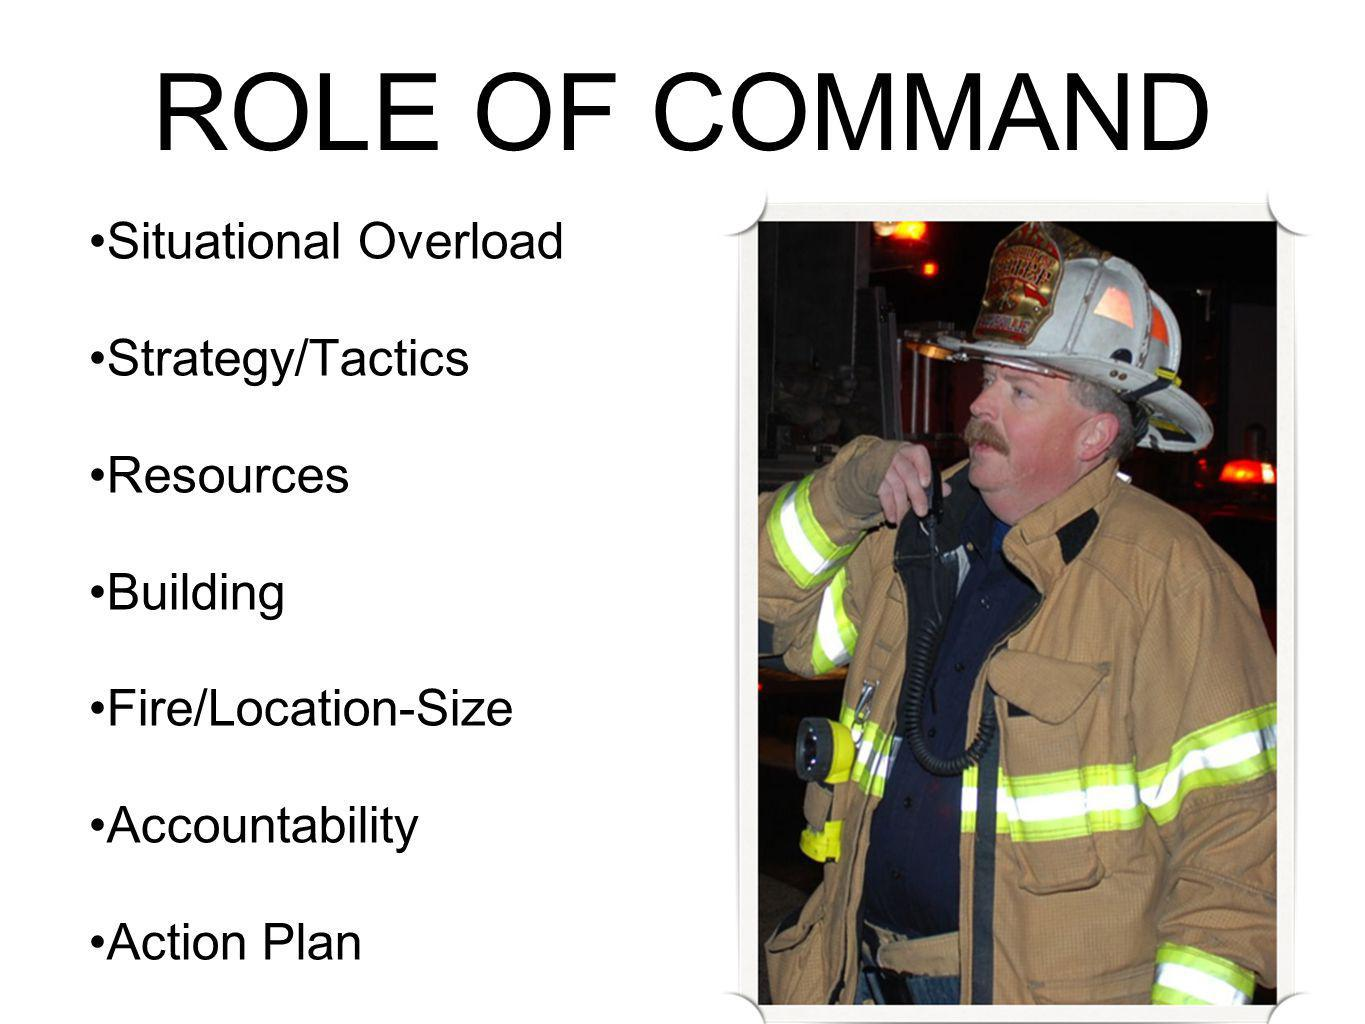 ROLE OF COMMAND Situational Overload Strategy/Tactics Resources Building Fire/Location-Size Accountability Action Plan